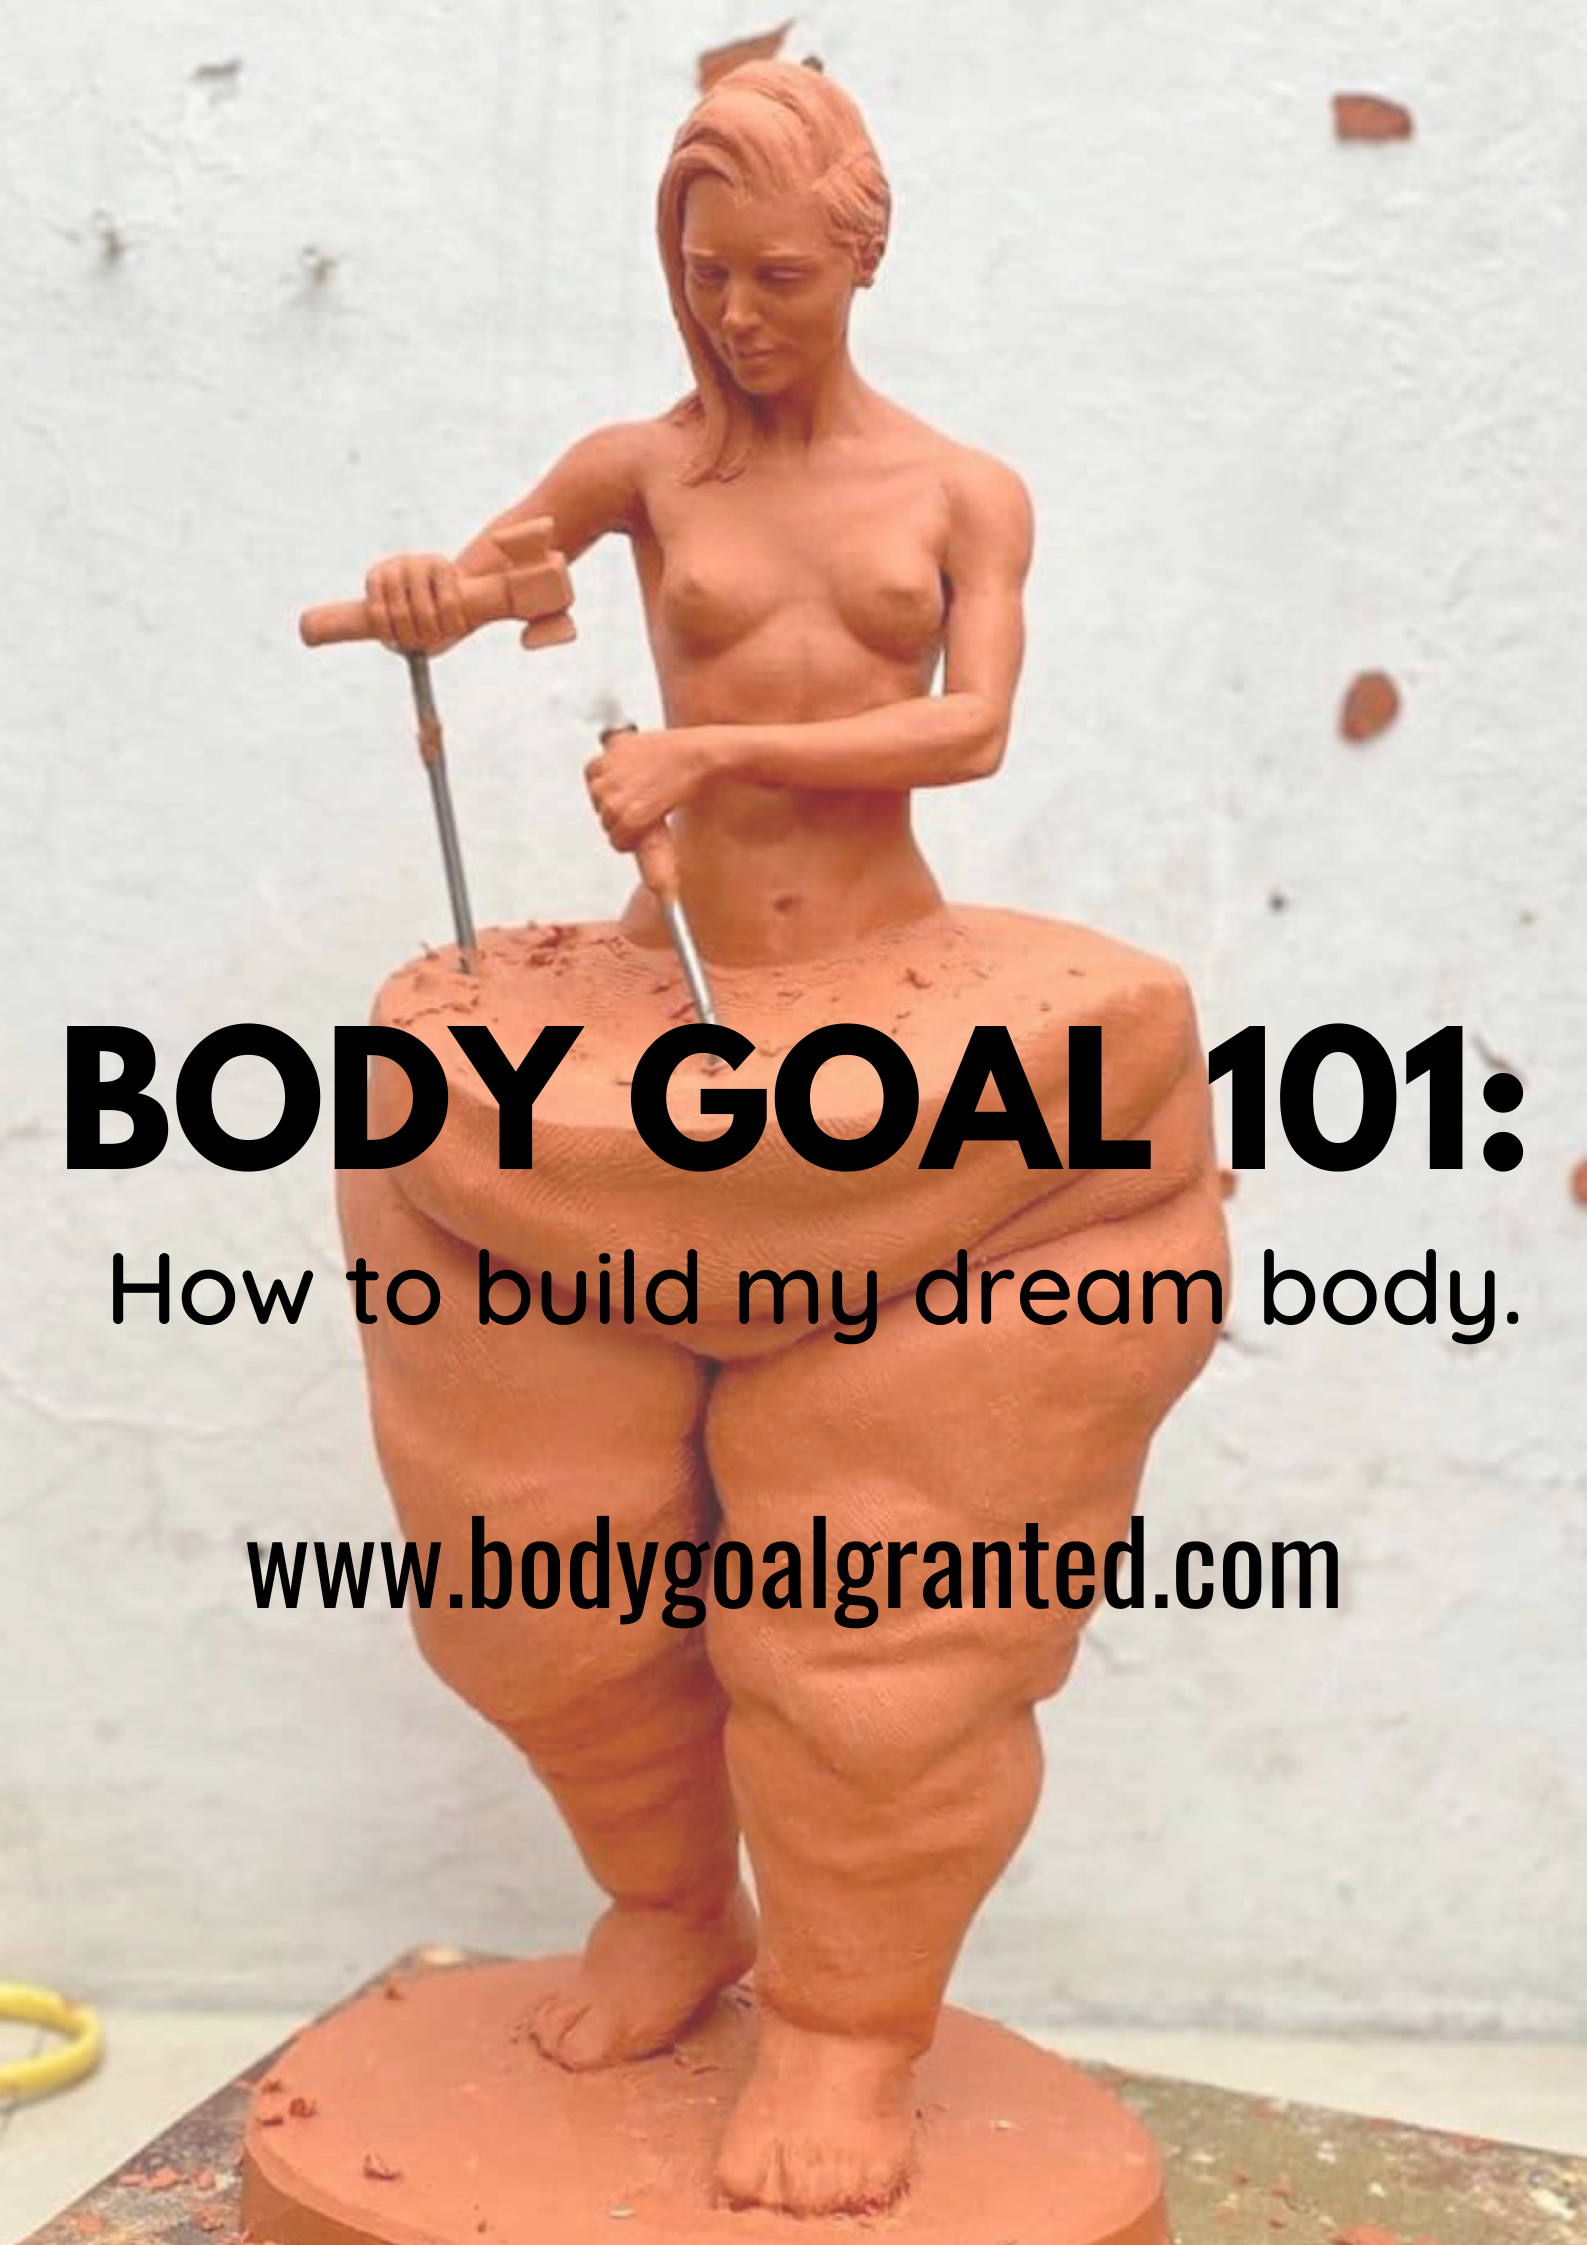 How to build my dream body.